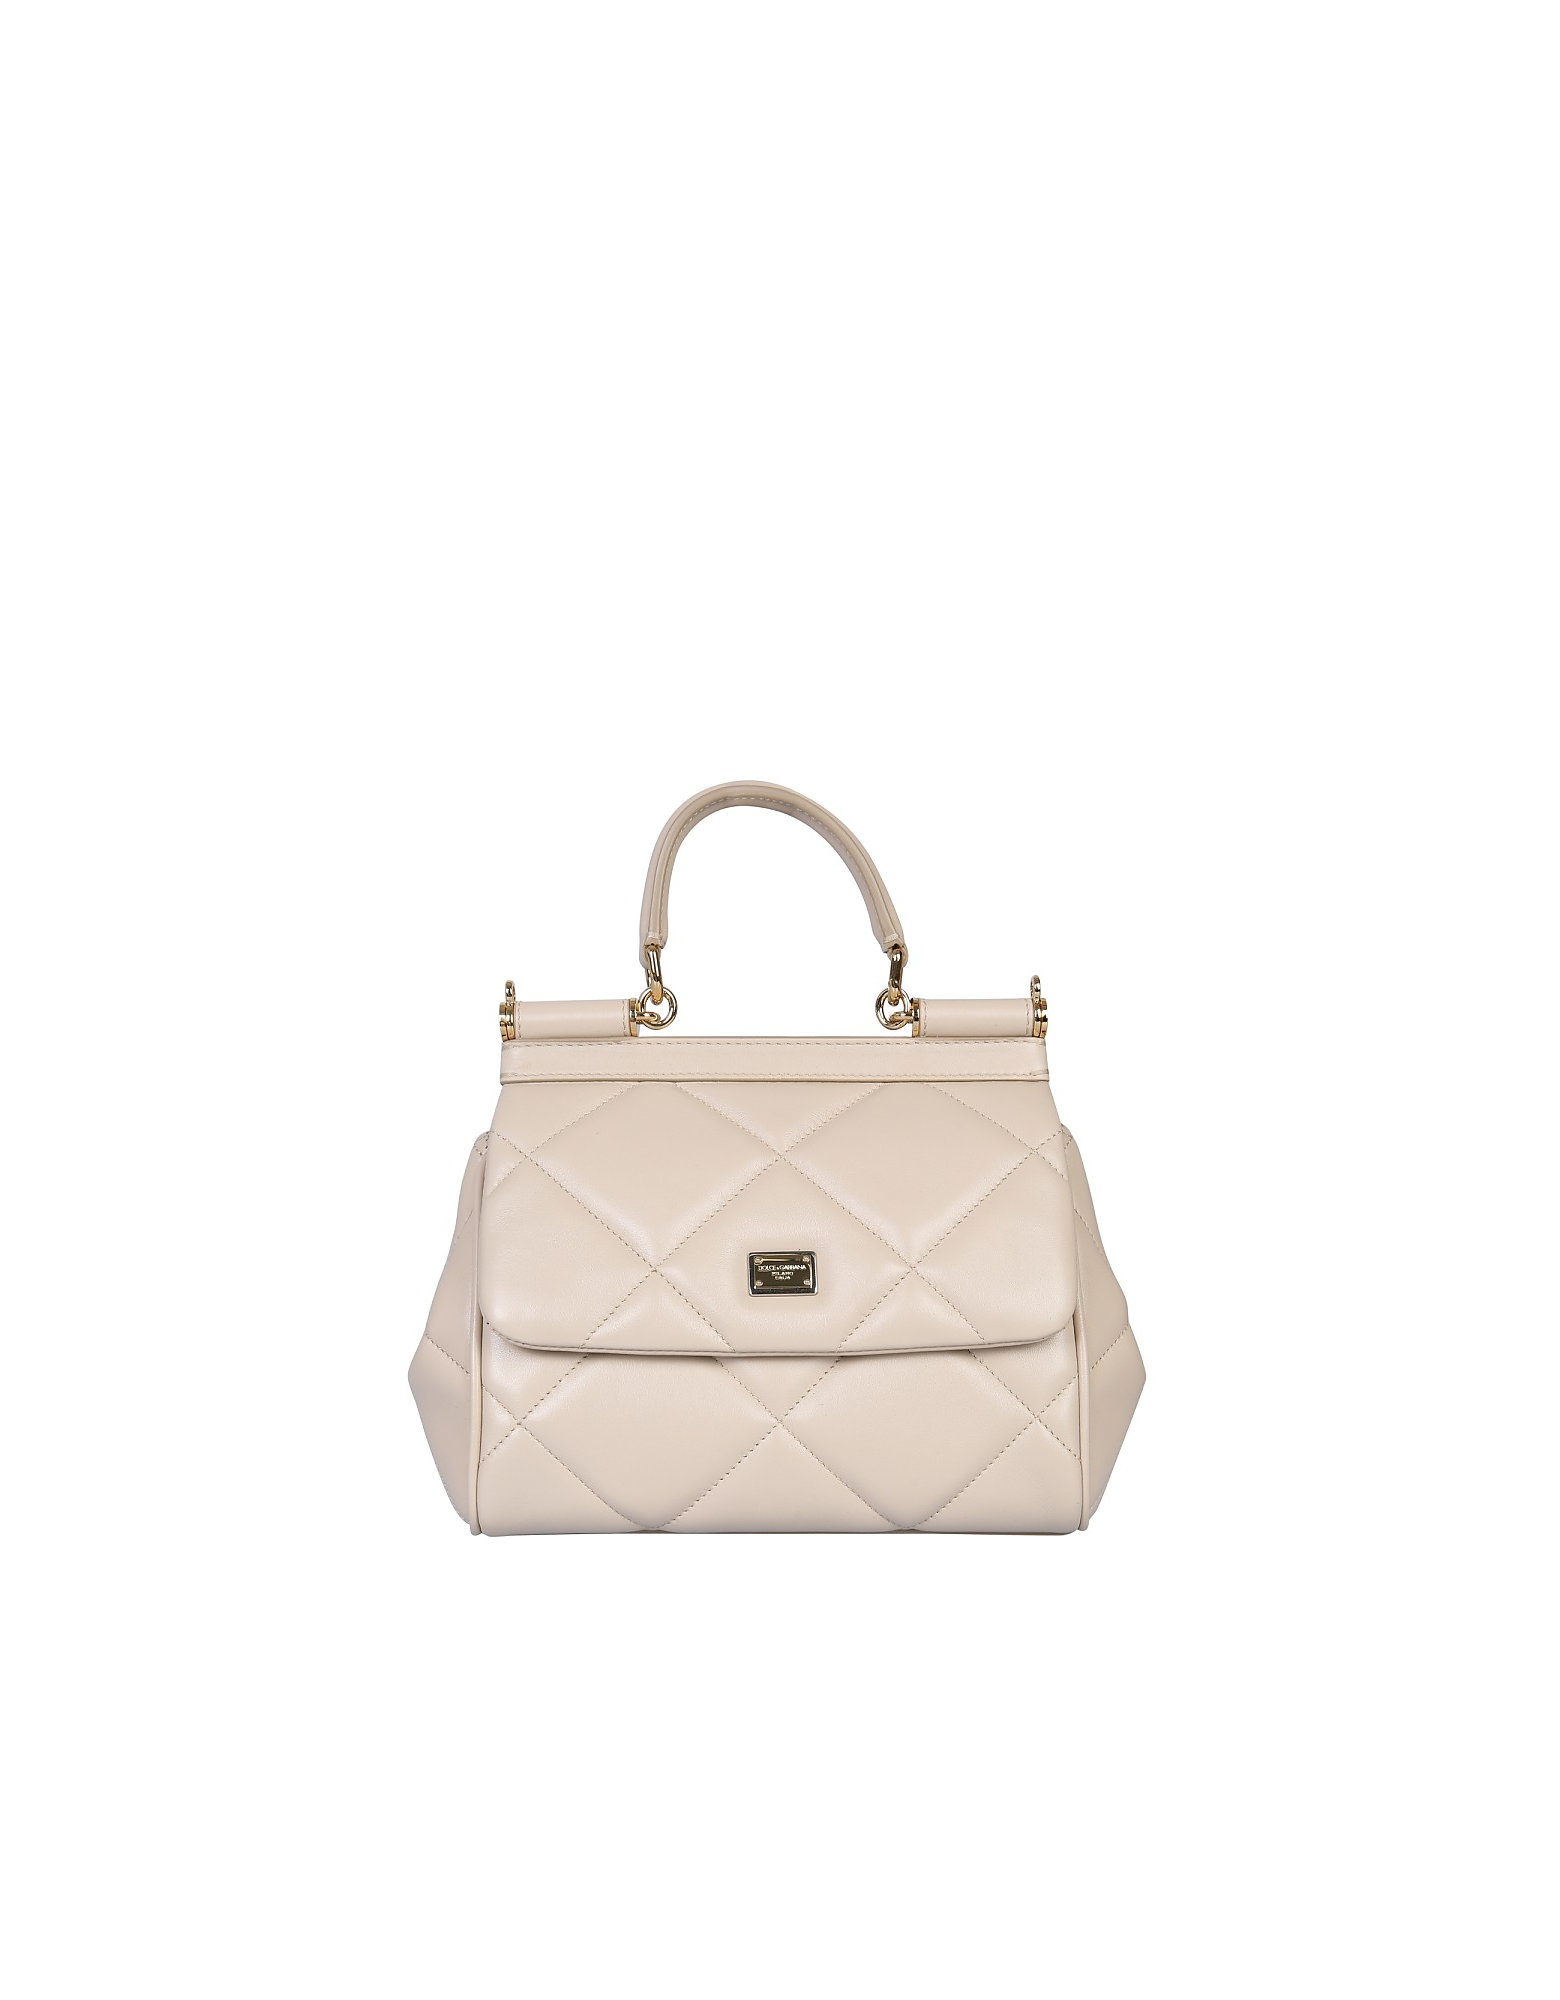 Dolce & Gabbana Leathers SMALL SICILY BAG